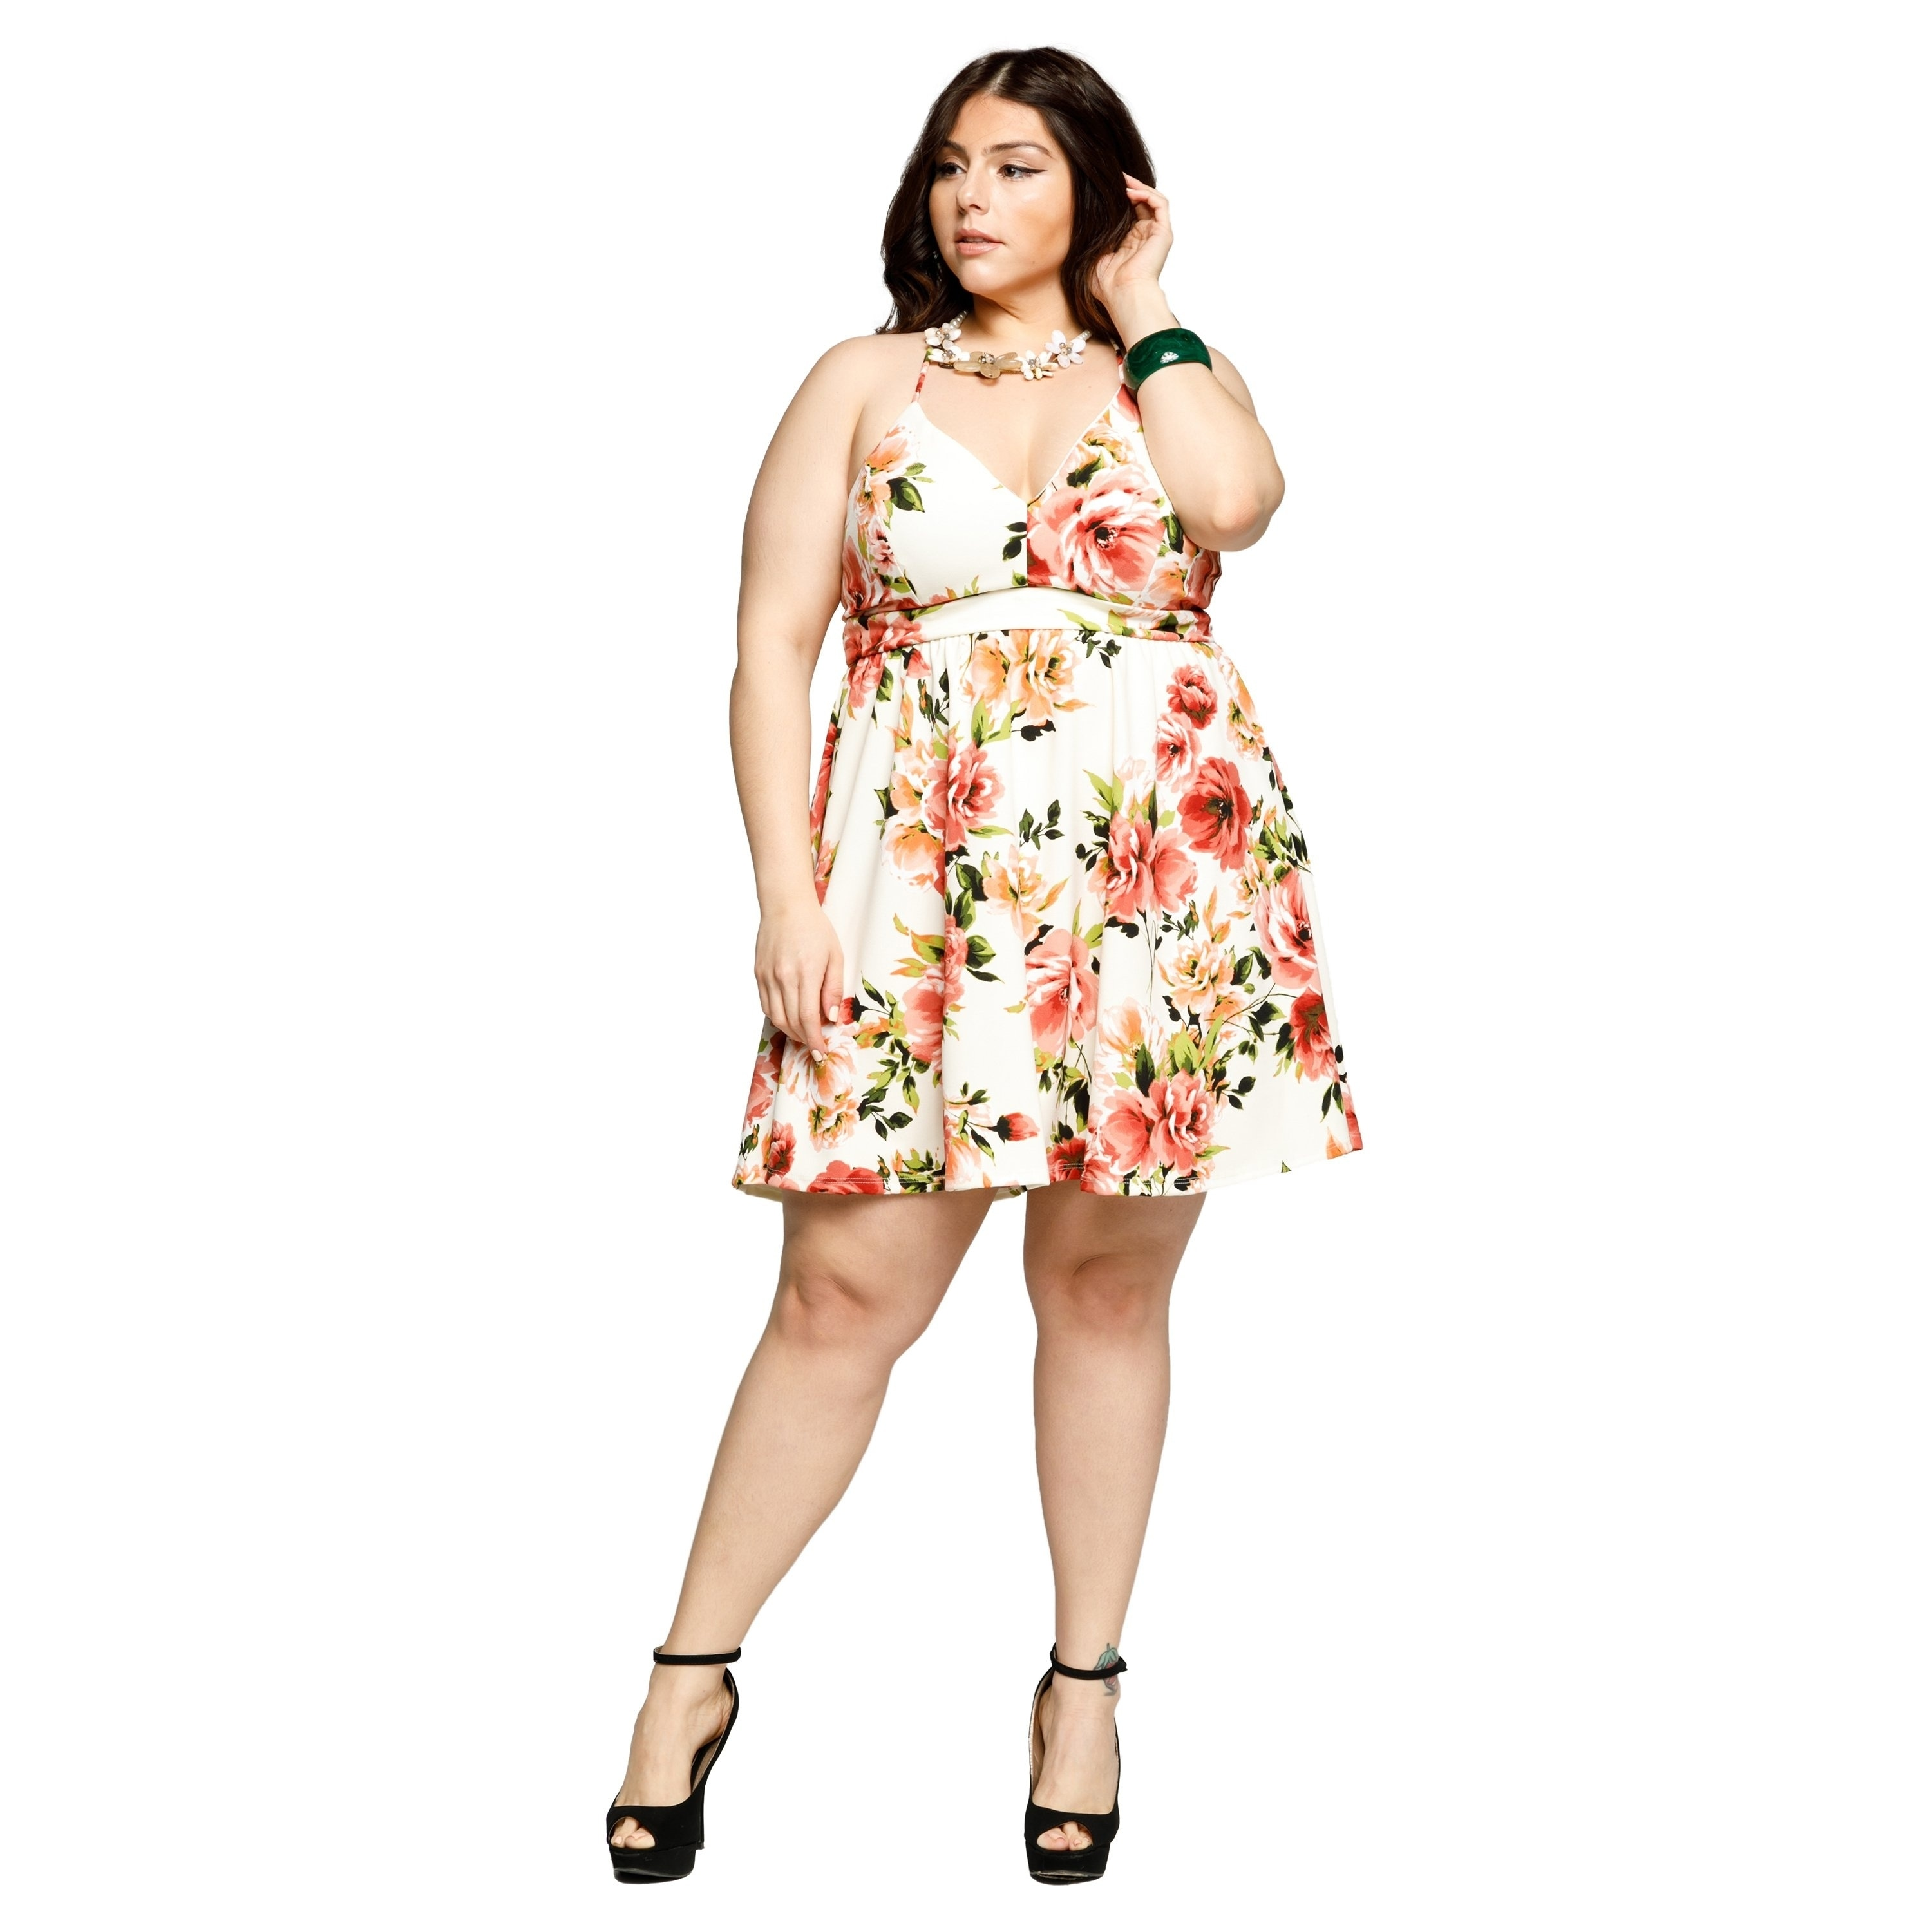 cf066abcef9 Shop Xehar Womens Plus Size Sexy Sleeveless Floral Short Mini Summer Dress  - Free Shipping On Orders Over  45 - Overstock.com - 19813001